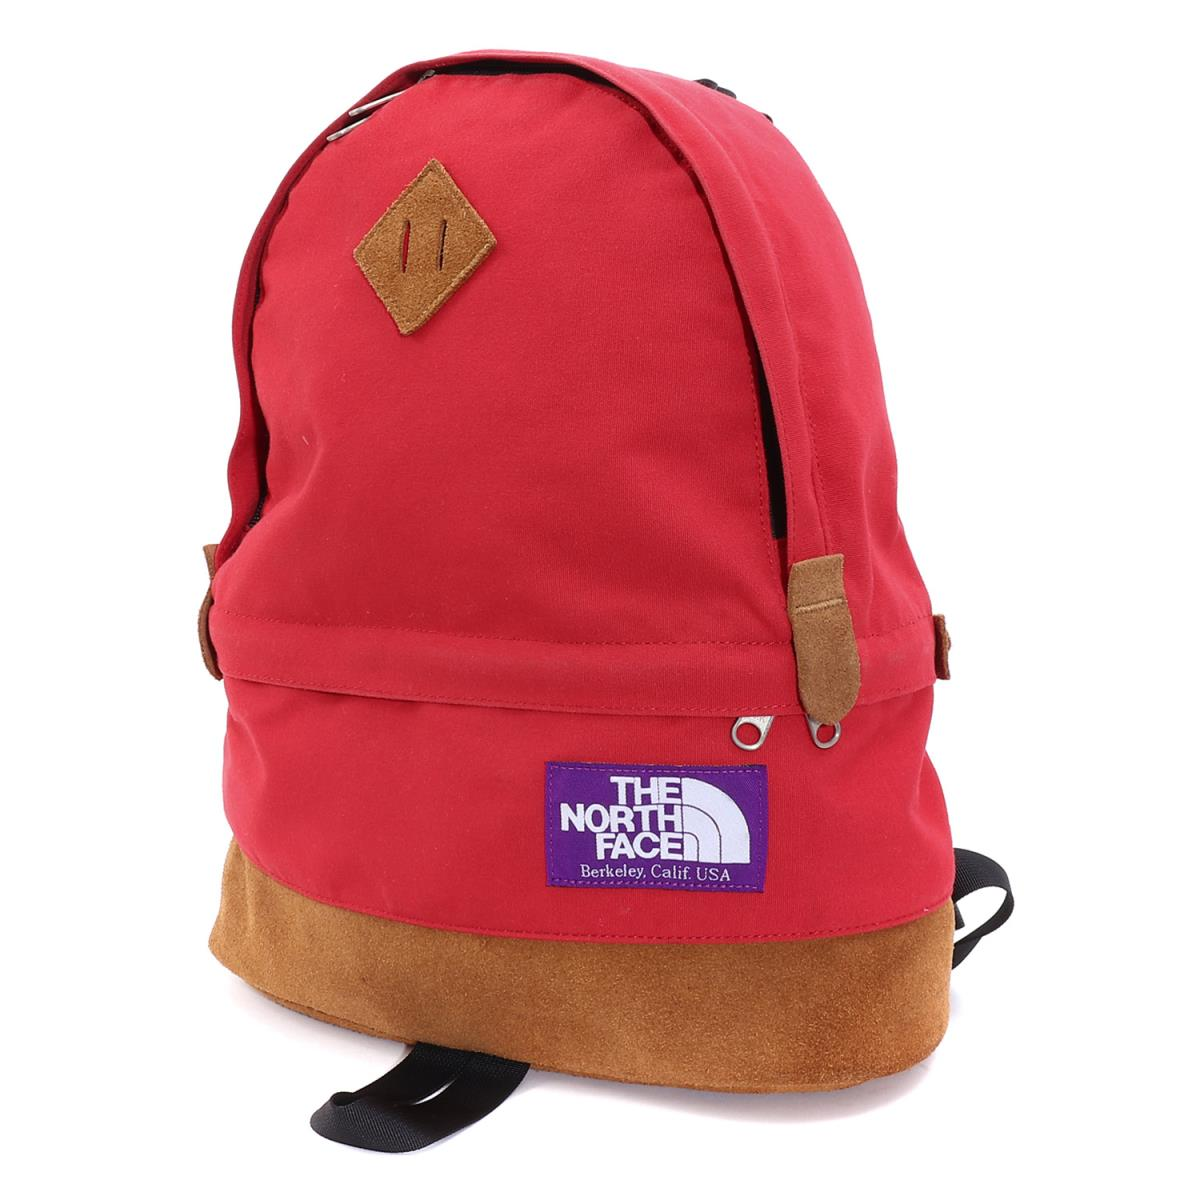 8b11daeee THE NORTH FACE (the North Face) 14S/S medium day pack (purple label /  Medium Day Pack) red